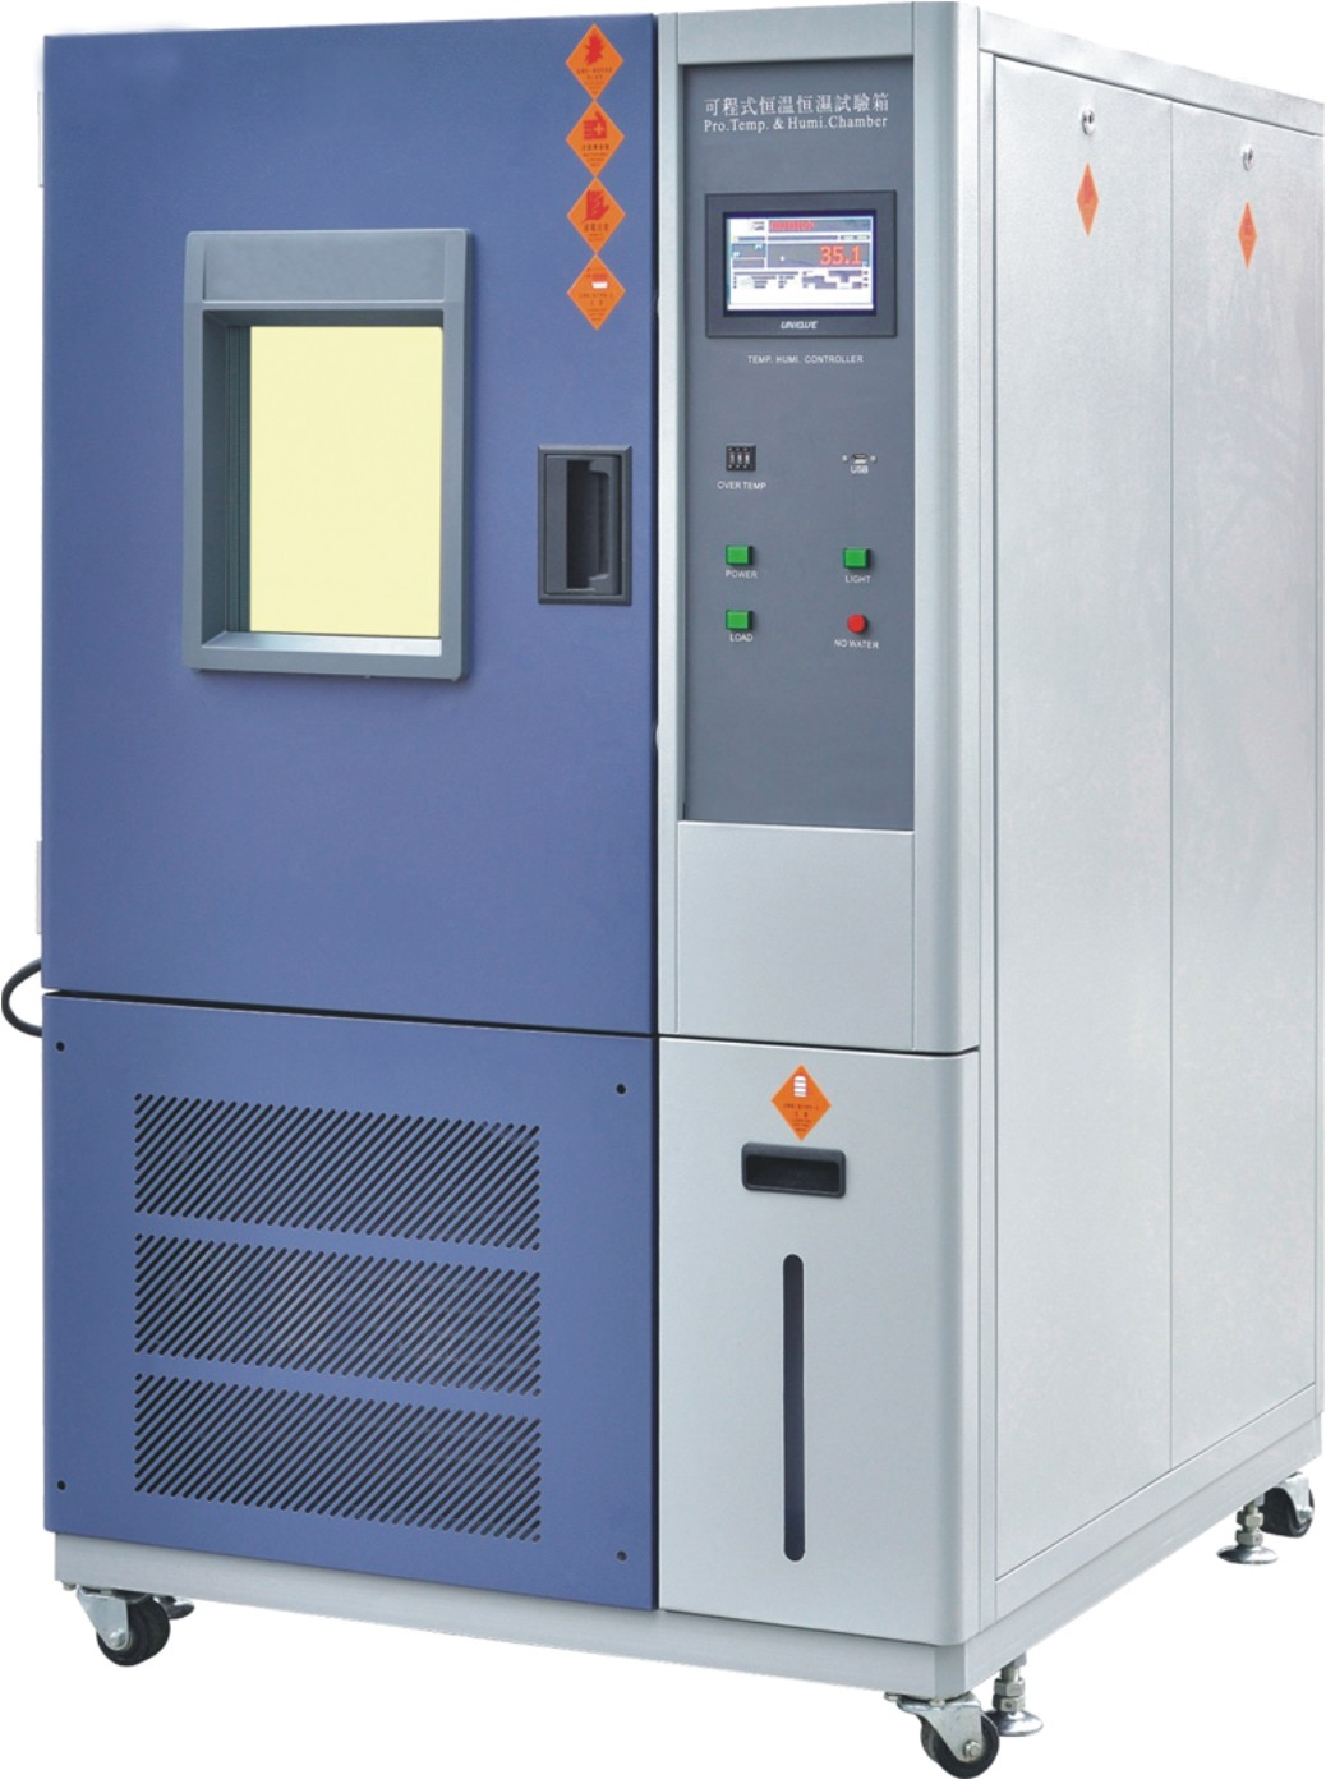 Climatic Test Chamber for Humidity and Temperature